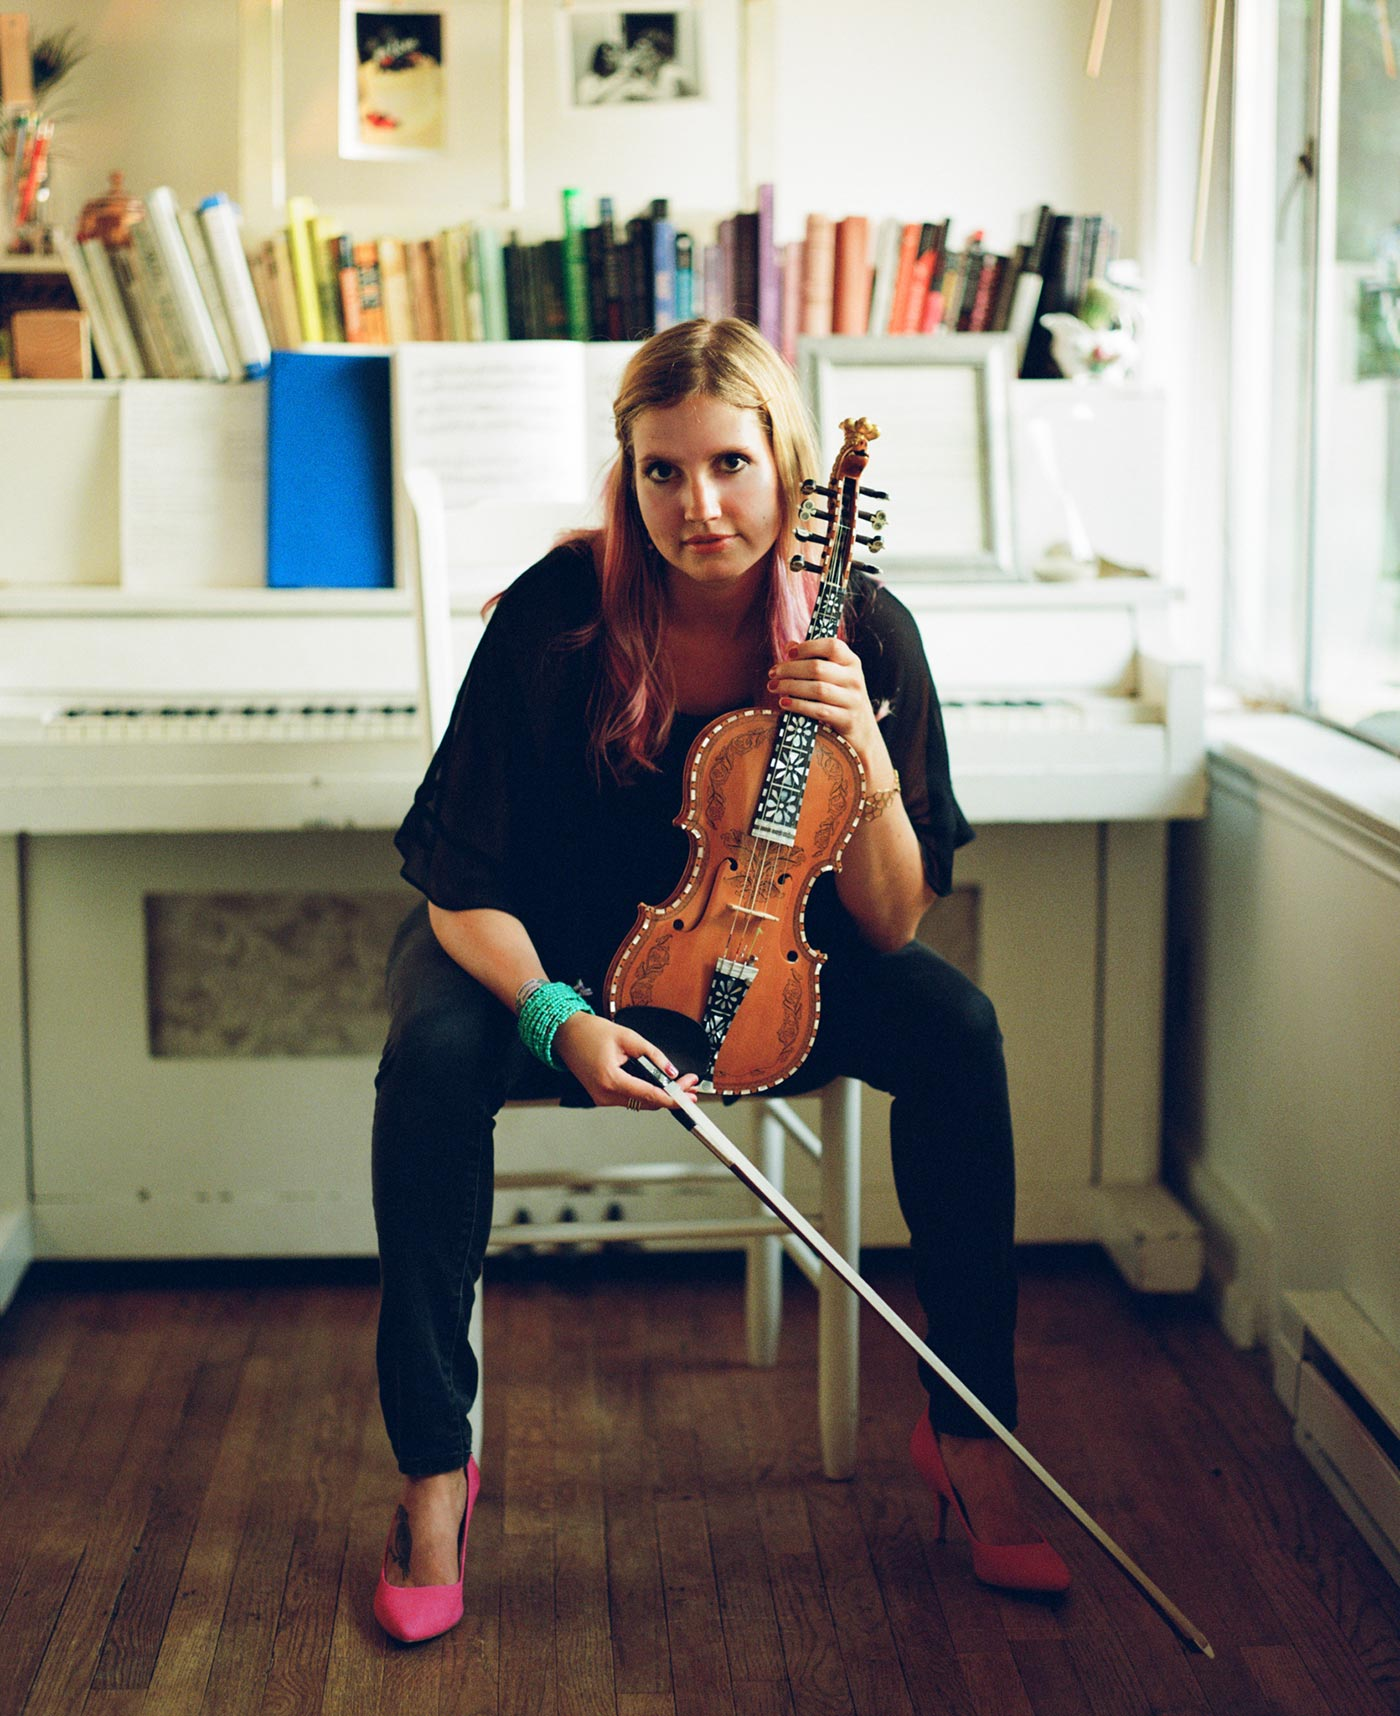 Rachel Nesvig holding a Hardanger fiddle and wearing pink shoes